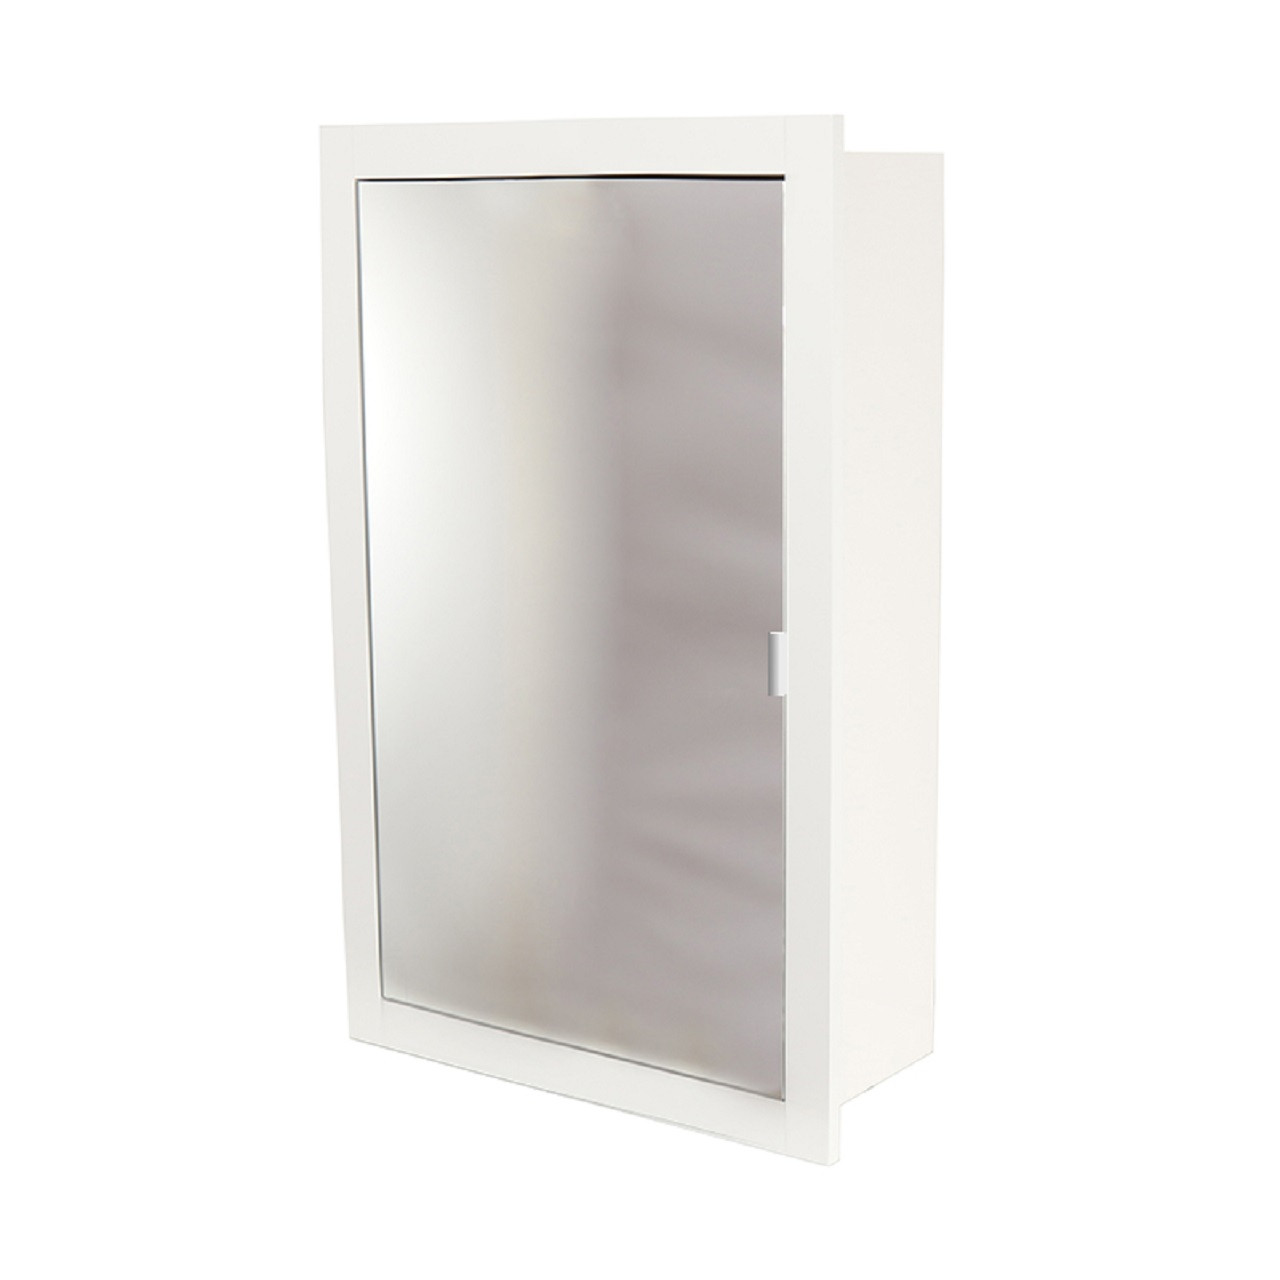 official photos 8b9b5 c2c2d WholeSeal Wetroom White 535mm x 800mm x 211mm Recessed Mirror Cabinet